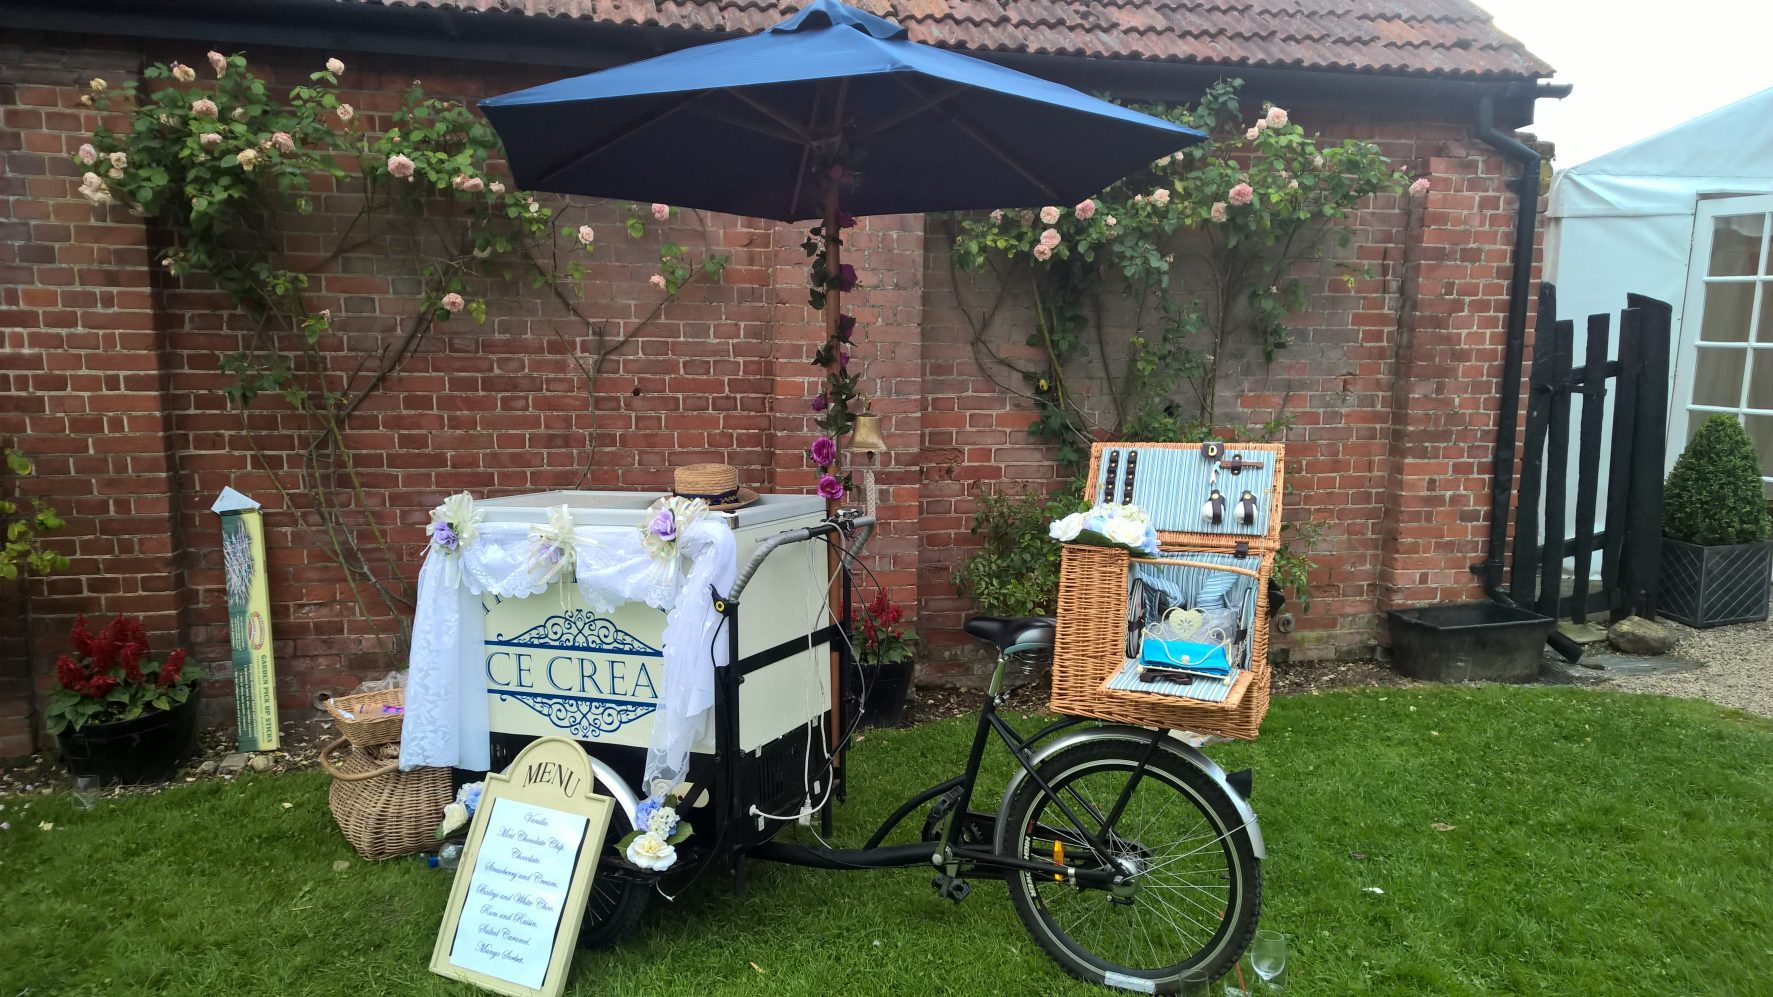 ice cream bicycle at wedding.